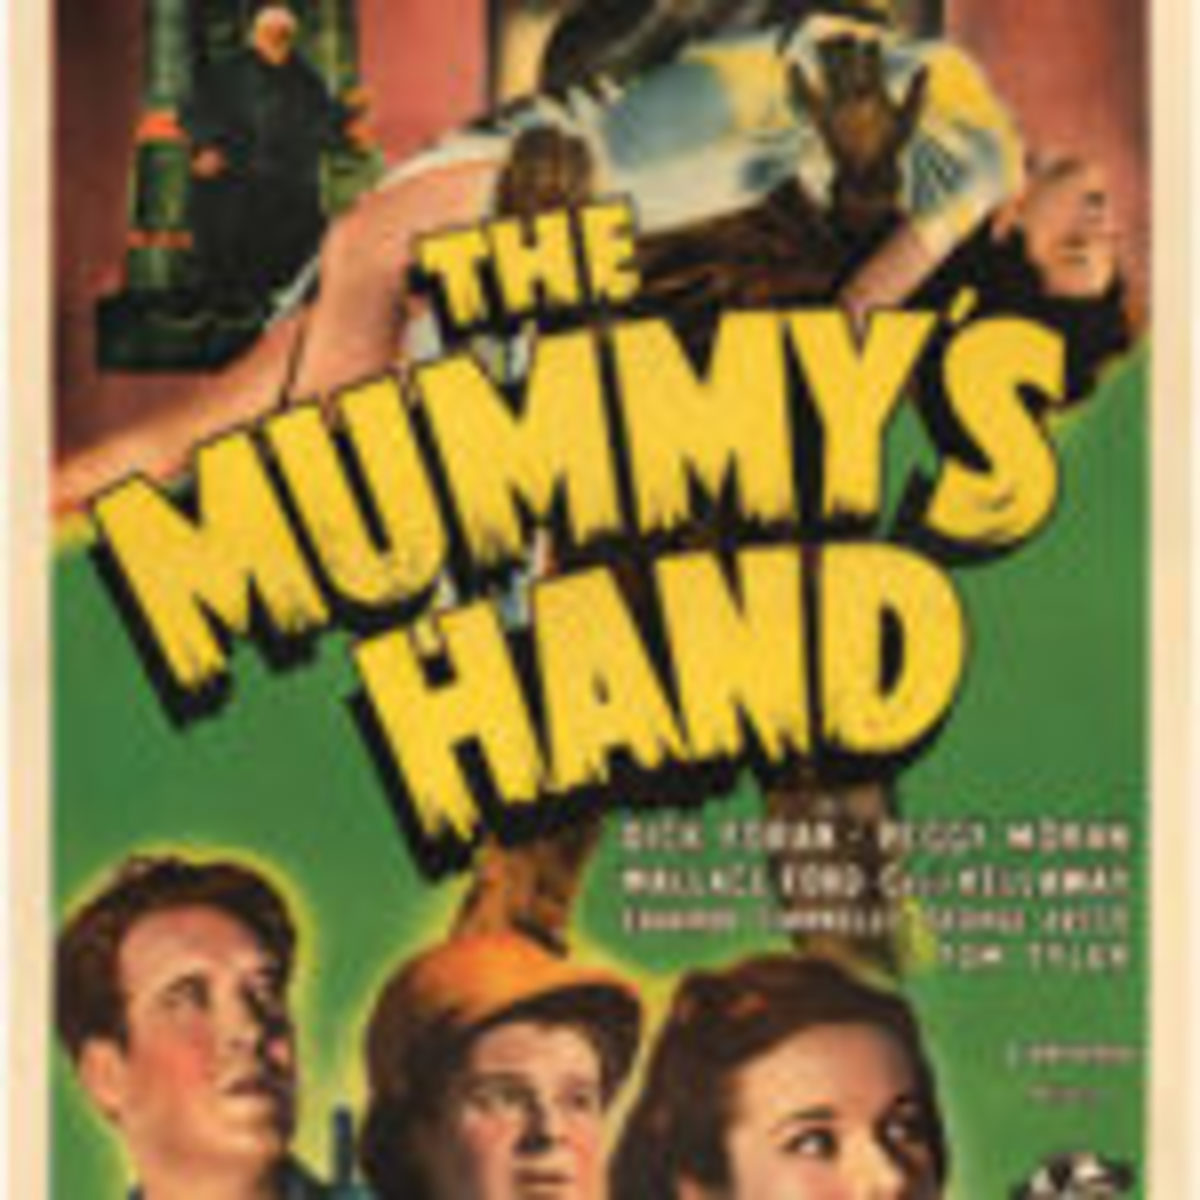 The Mummy's Hand linen-mounted one-sheet movie poster for film's original 1940 release, rarely seen in the marketplace, first example to be offered by Hake's in 51 years. Est. $10,000-$20,000